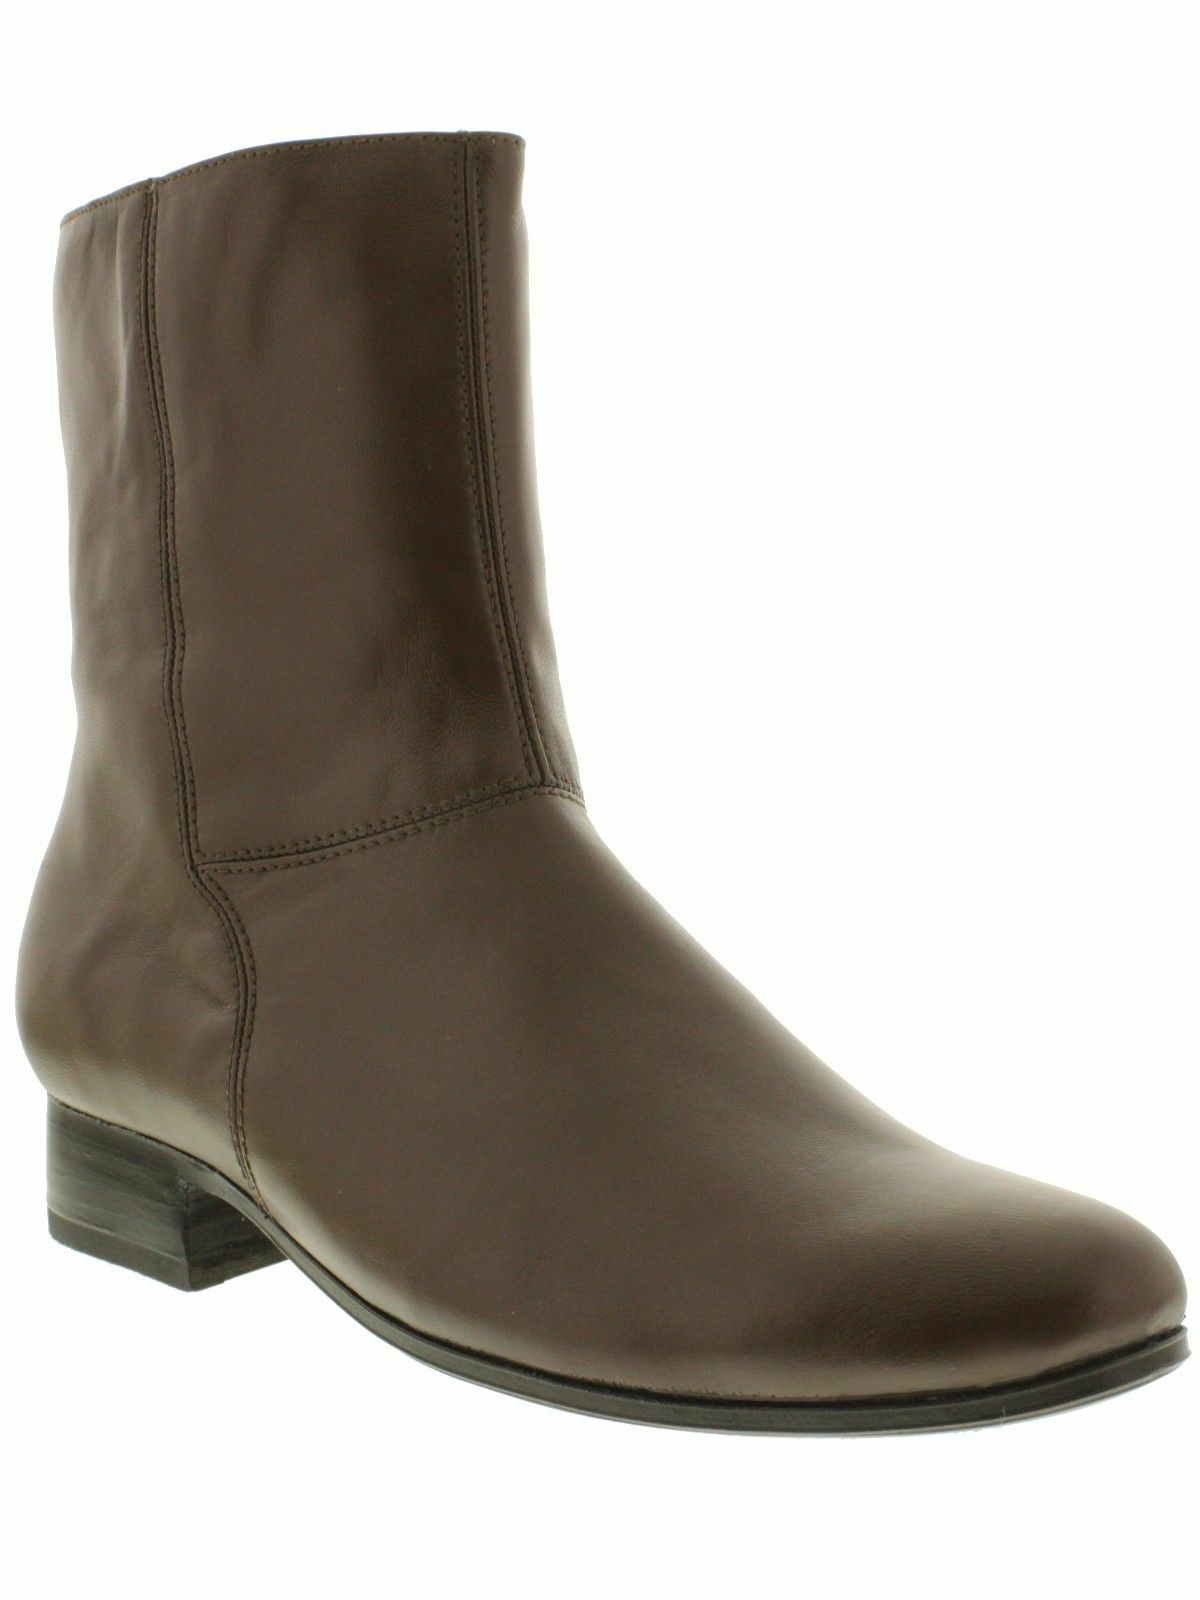 Uomo brown smooth leather ankle boots round zipper dress botin cowboy rodeo